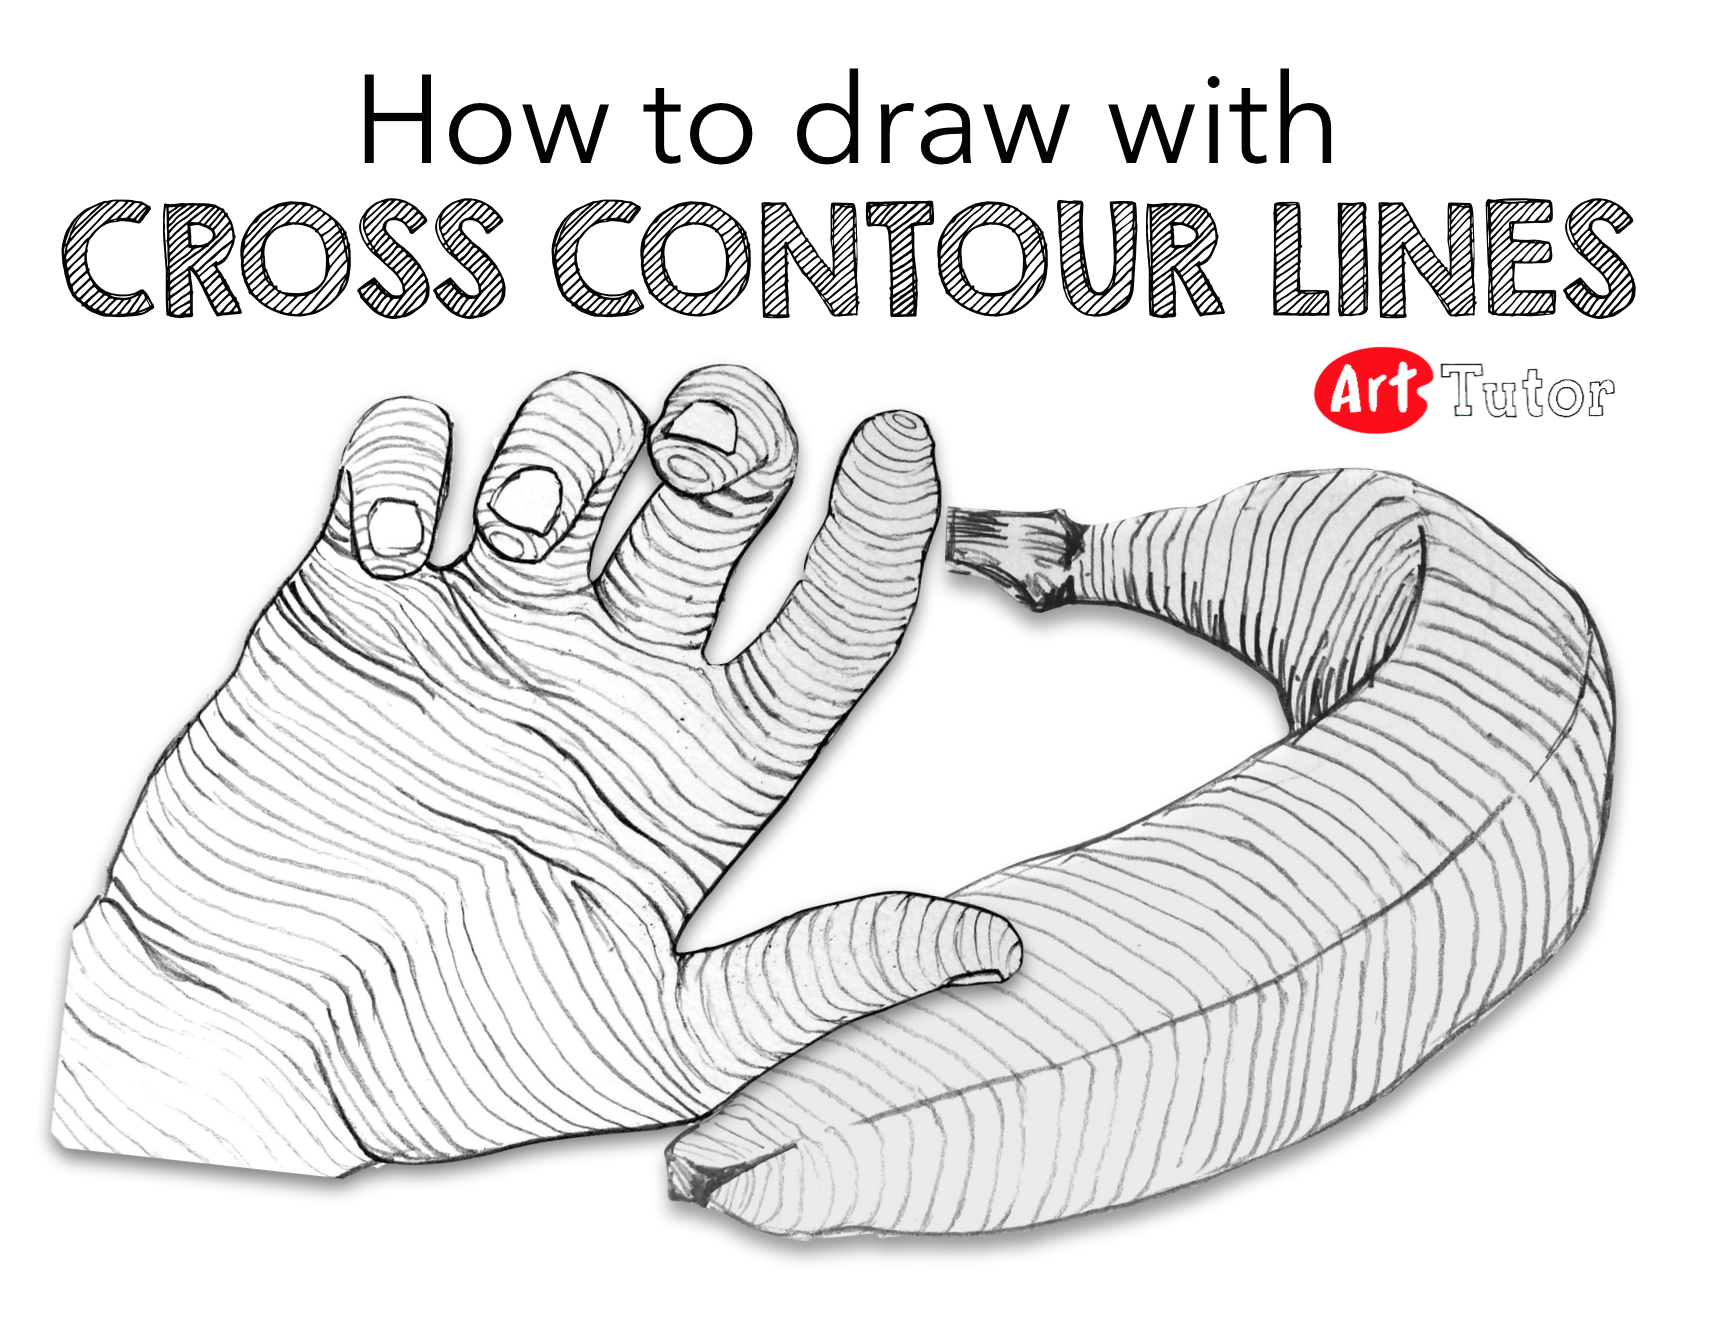 Drawing Lines Exercises : Cross contour drawing exercises are great for helping